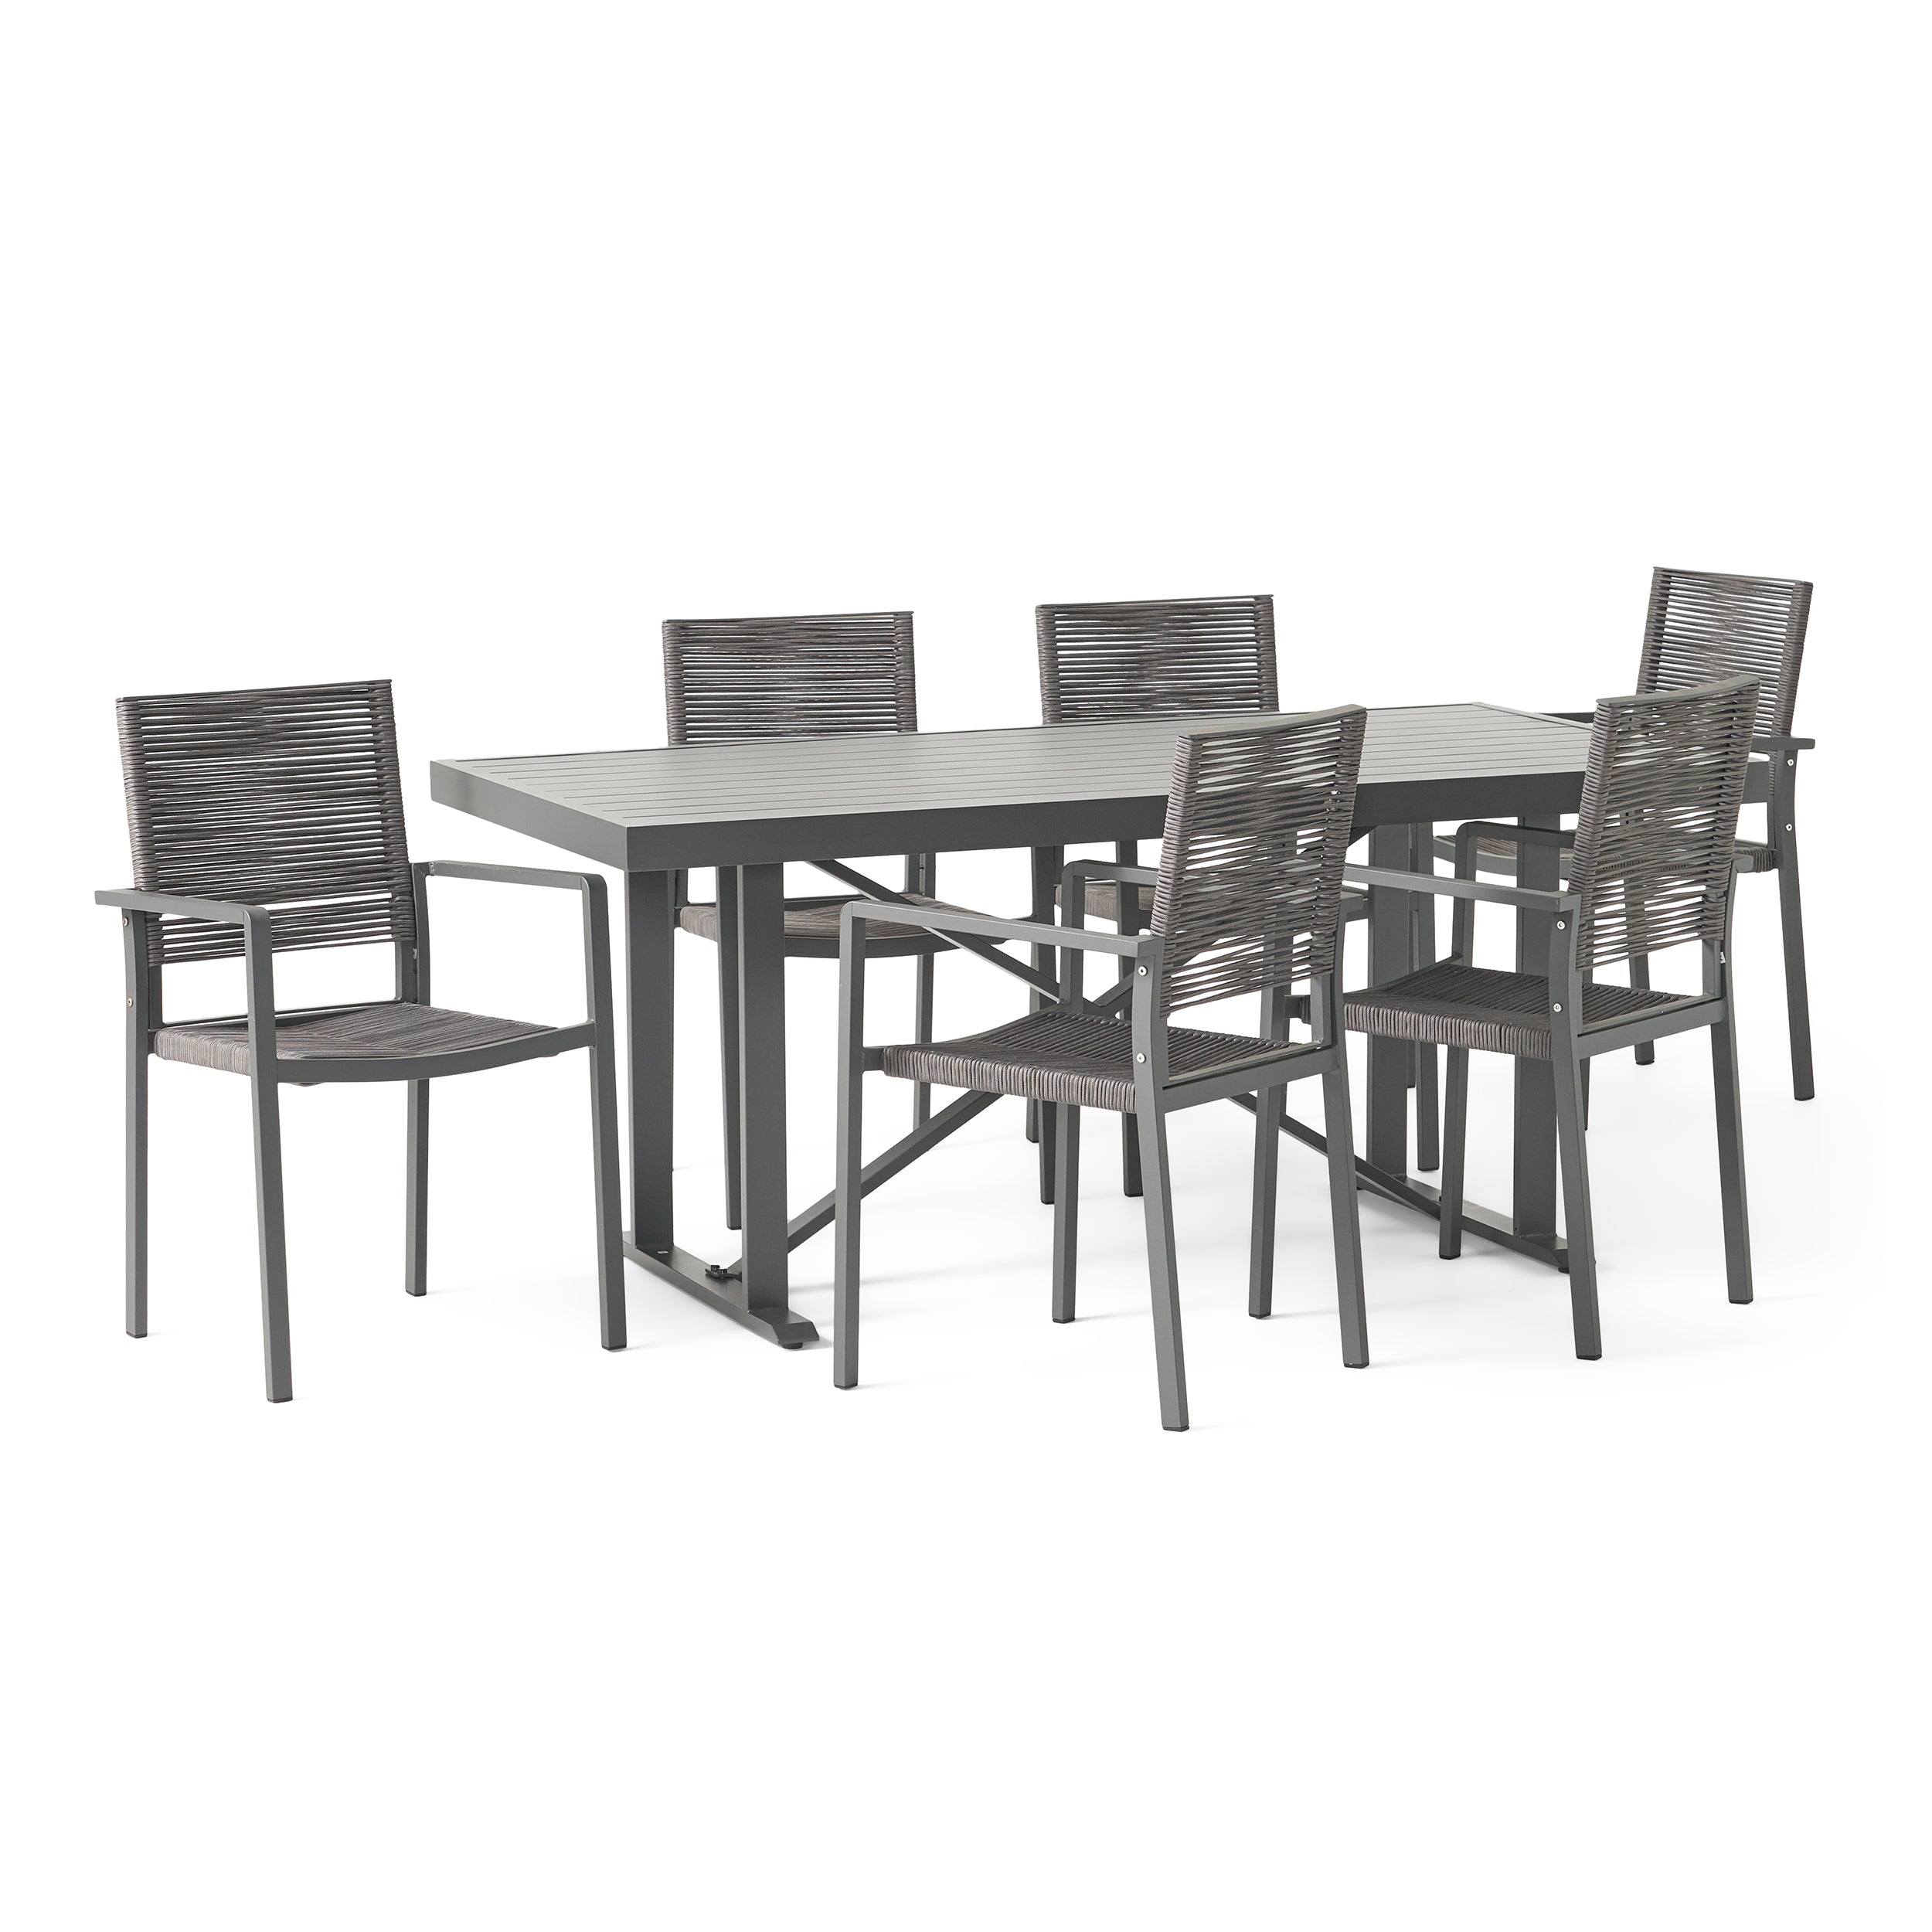 Aponaug Outdoor Modern Industrial Aluminum 7 Piece Dining Set with Rope Seating Default Title